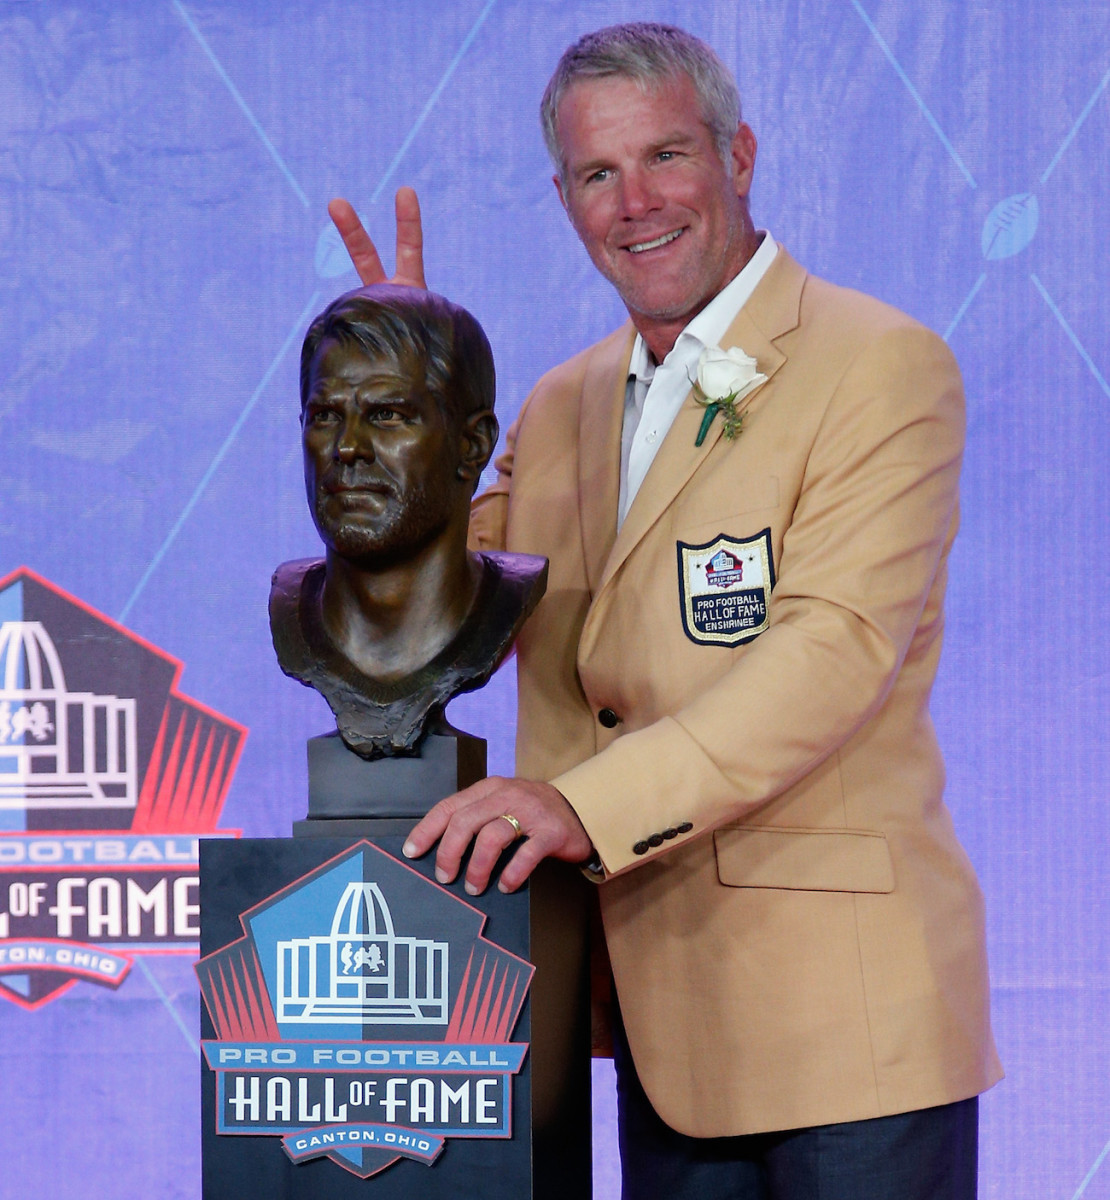 nfl-hall-of-fame-induction-2016-article2.jpeg